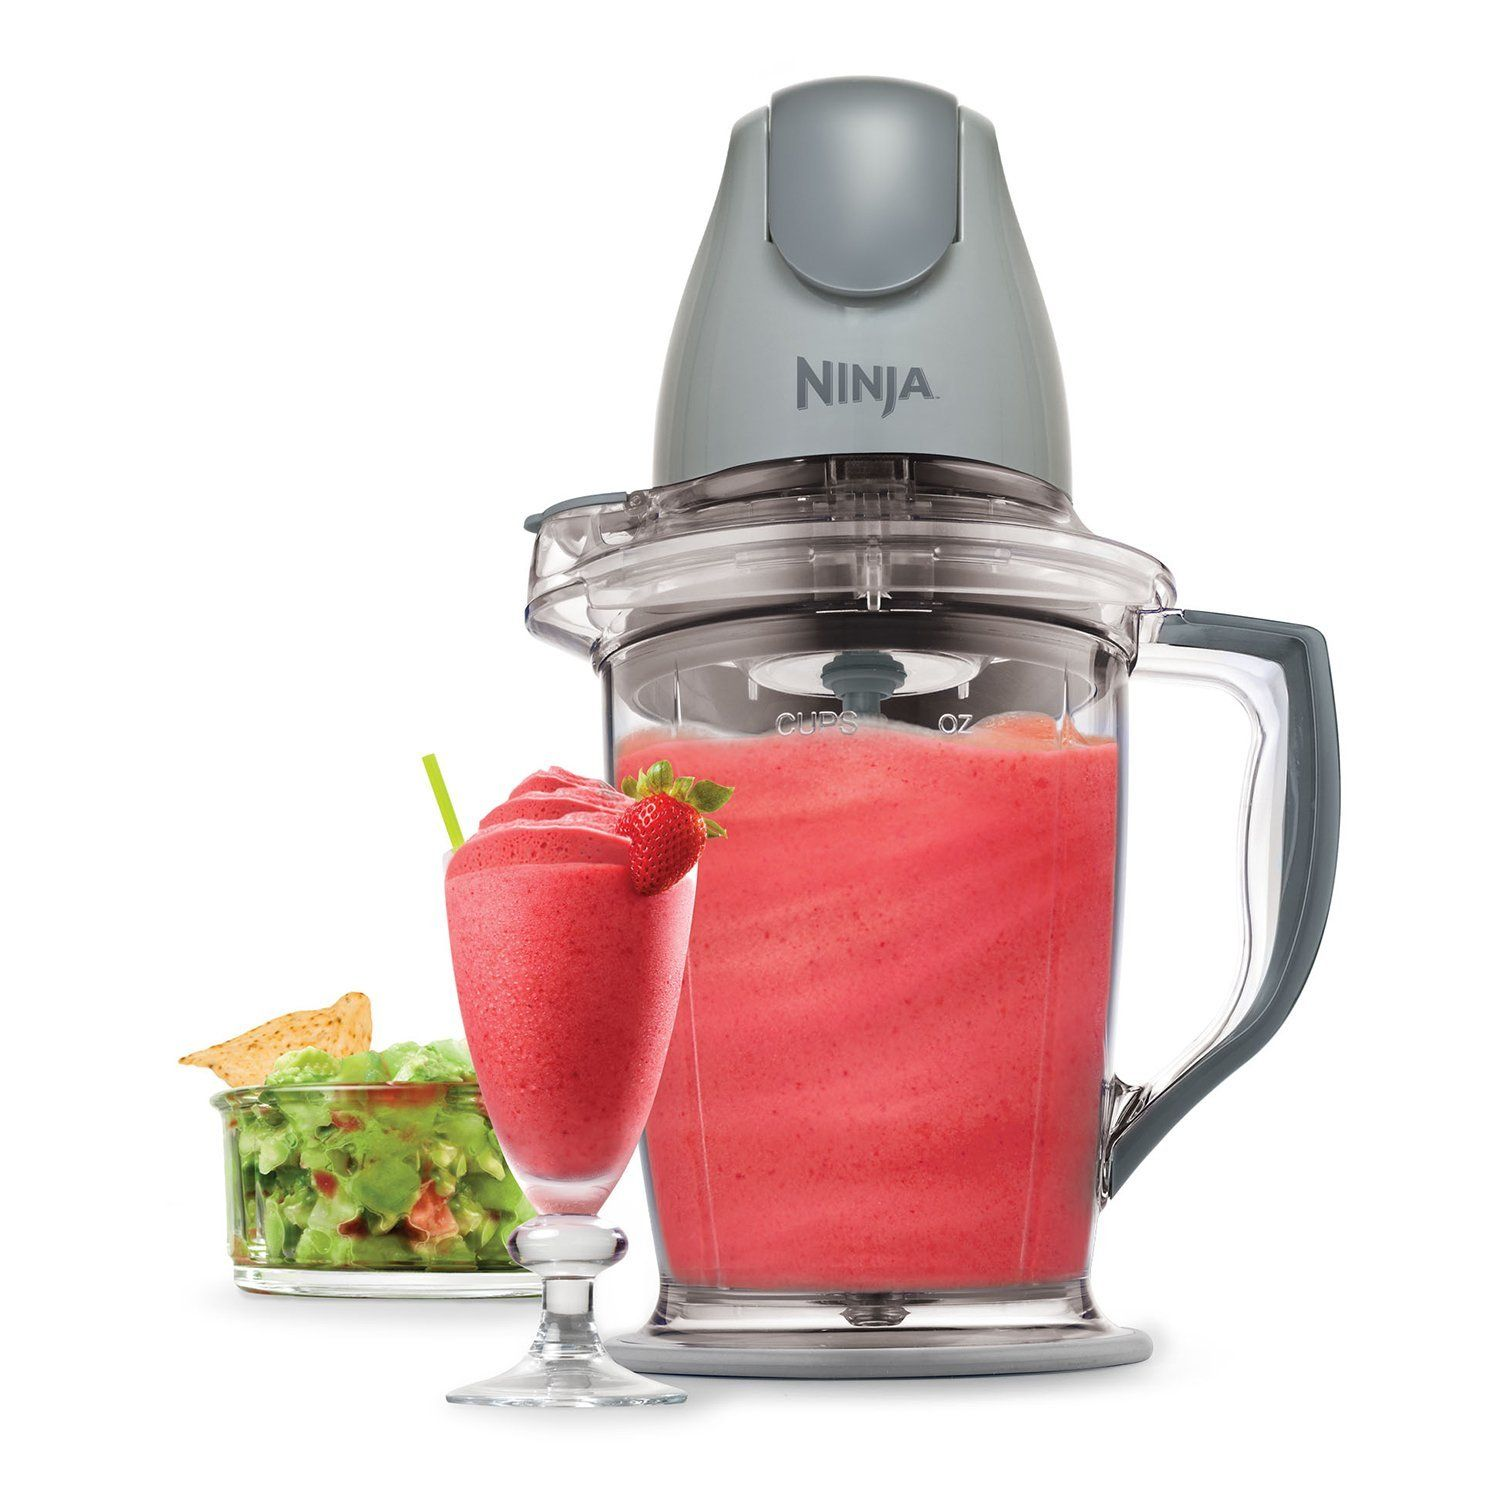 Uncategorized Seconds Kitchen Appliances the ninja master prep crushes ice into snow in seconds blends frozen fruits creamy small appliancesspecialty appliancescookin